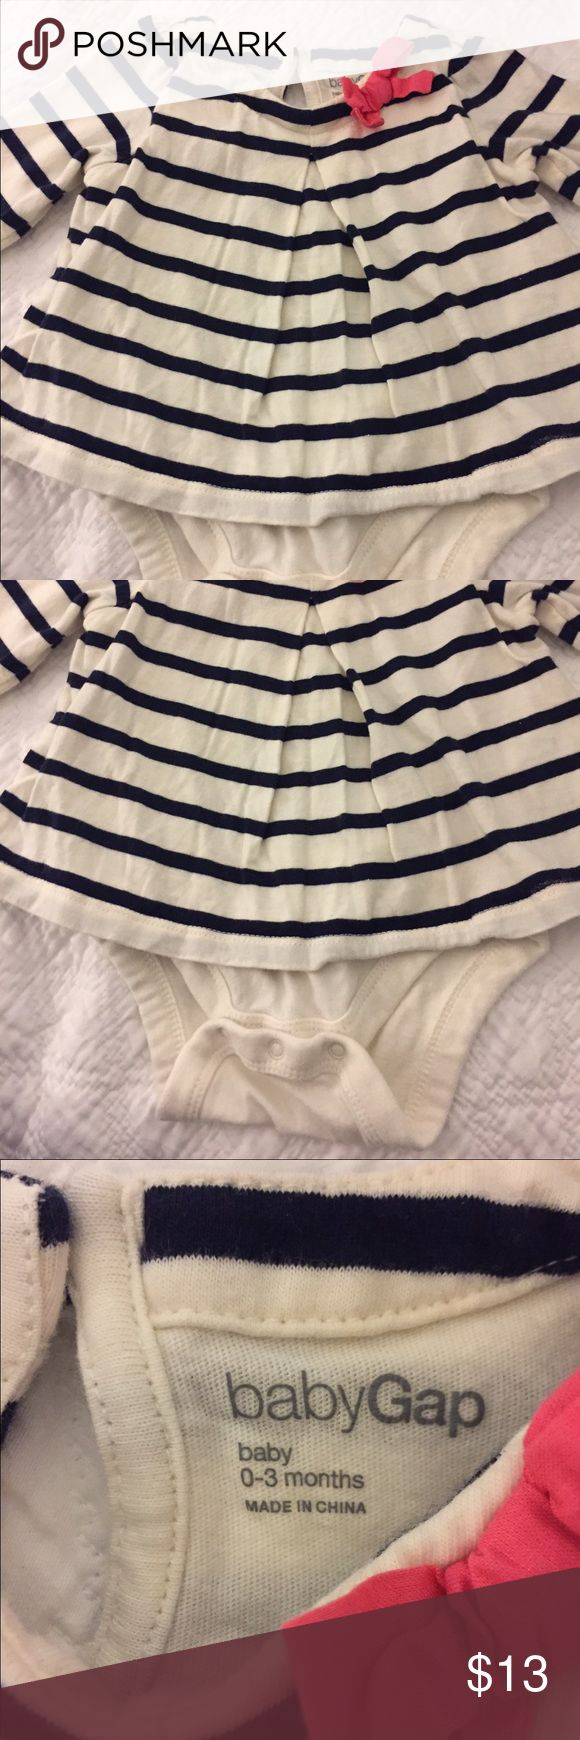 Gap nautical Top Gap nautical Top with pink bow detail GAP Shirts & Tops